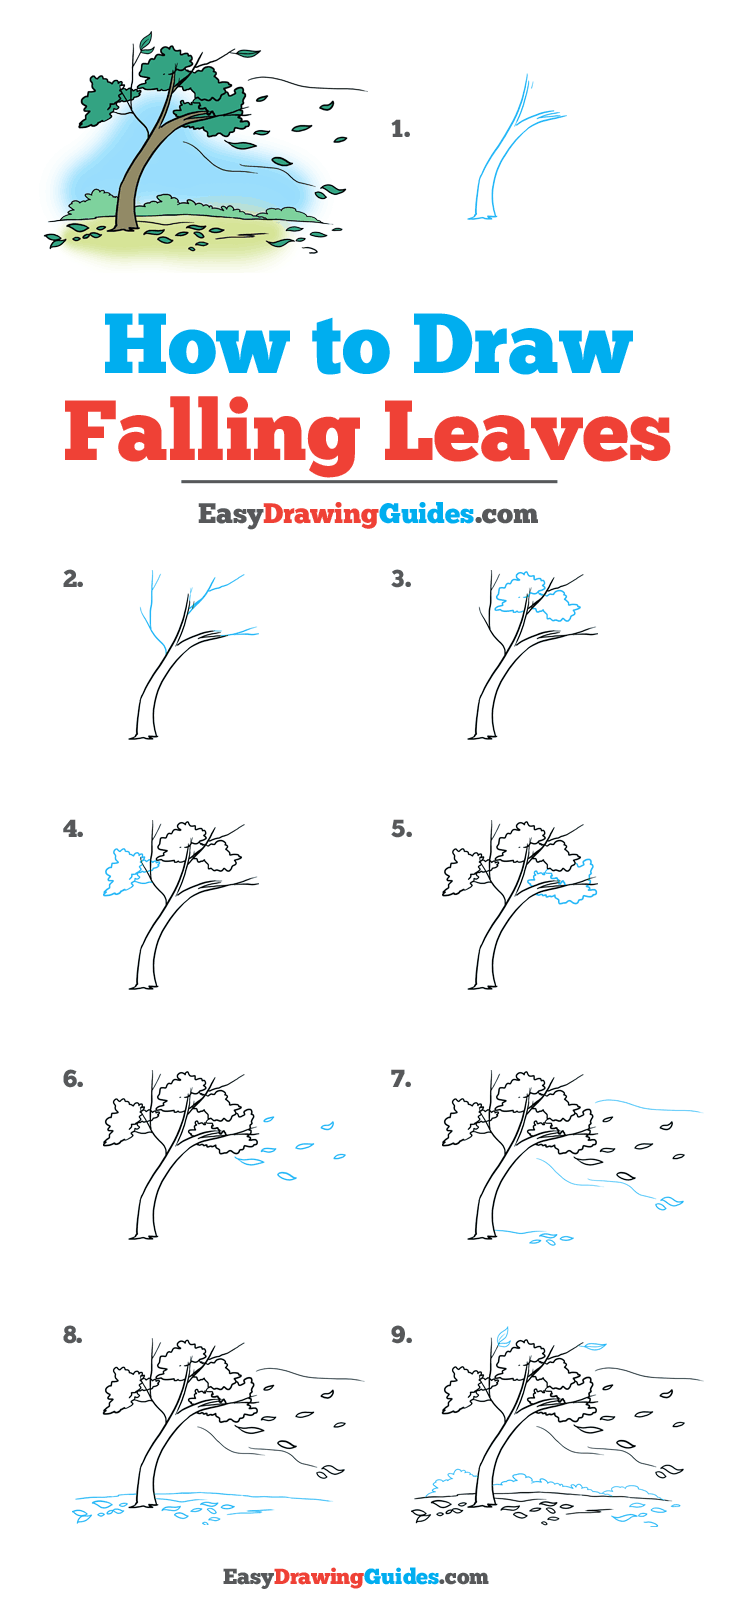 How to Draw Falling Leaves: Step by Step Tutorial